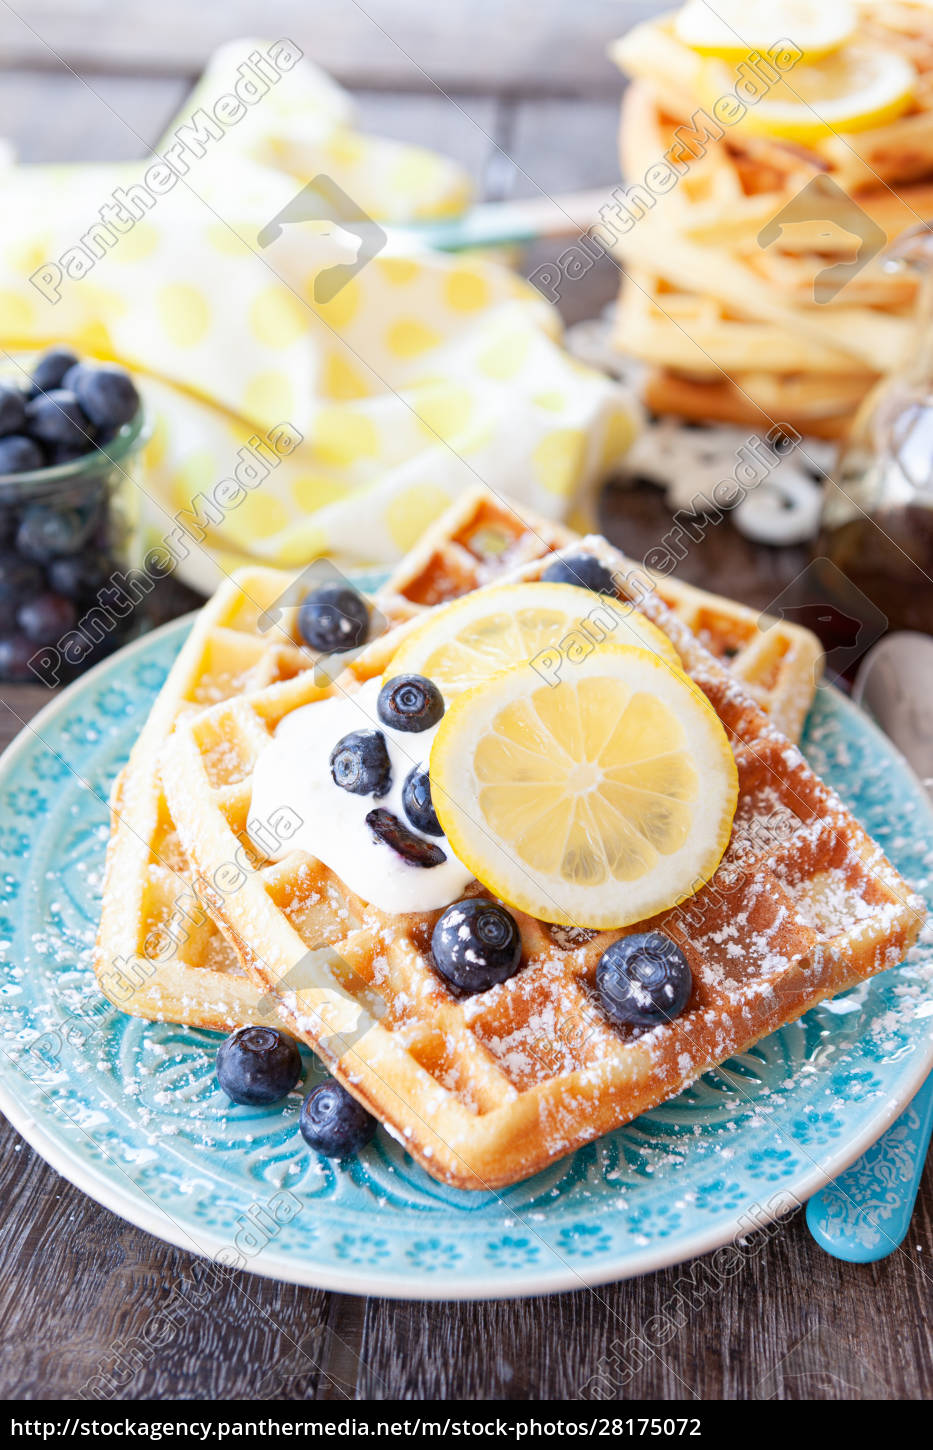 homemade, waffles, with, fresh, fruits - 28175072